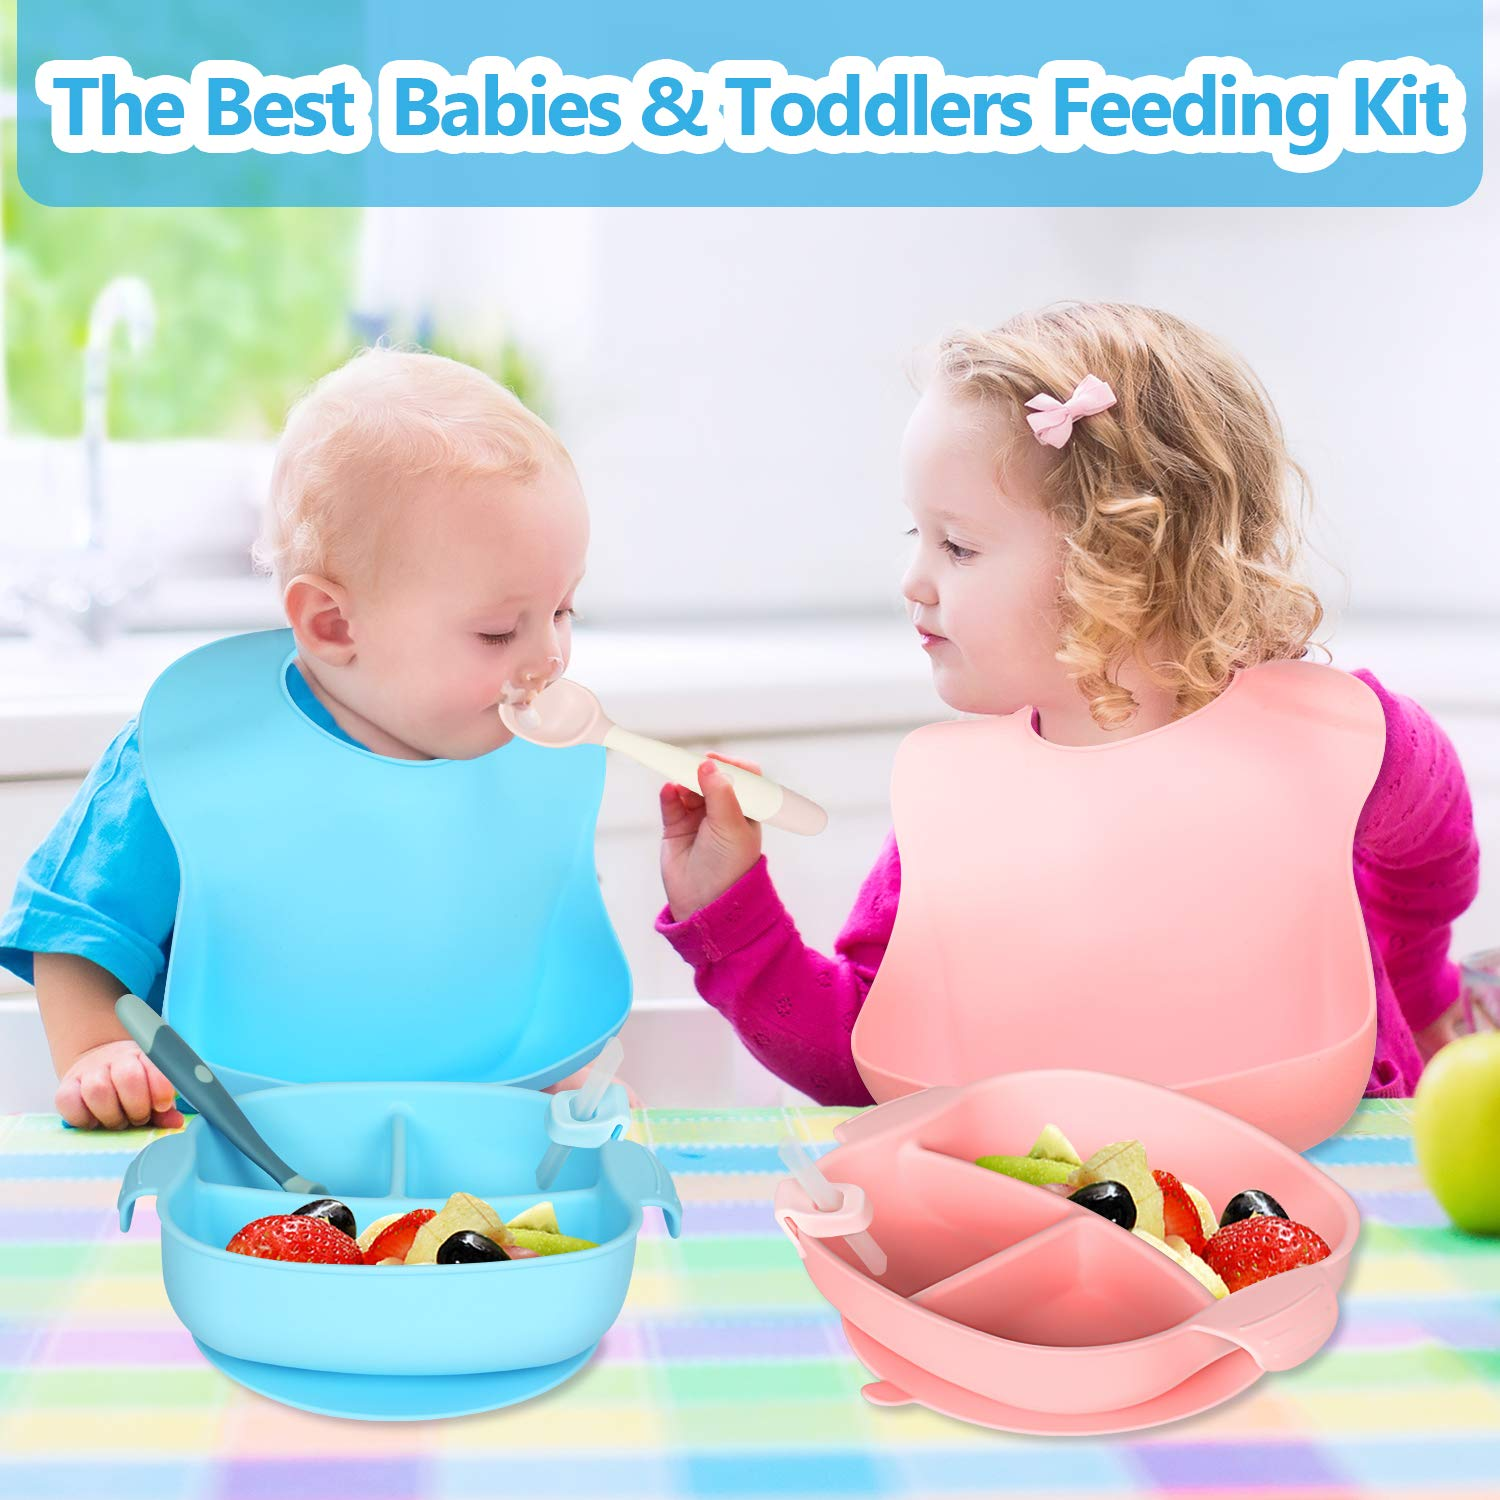 1 Silicone Strong Suction Toddler Bowl with Straw,1 Baby Self Feeding Spoon and Fork Set,1 Adjustable Silicone Baby Bib ROOHUA 5 Piece Silicone Baby Feeding Set Blue